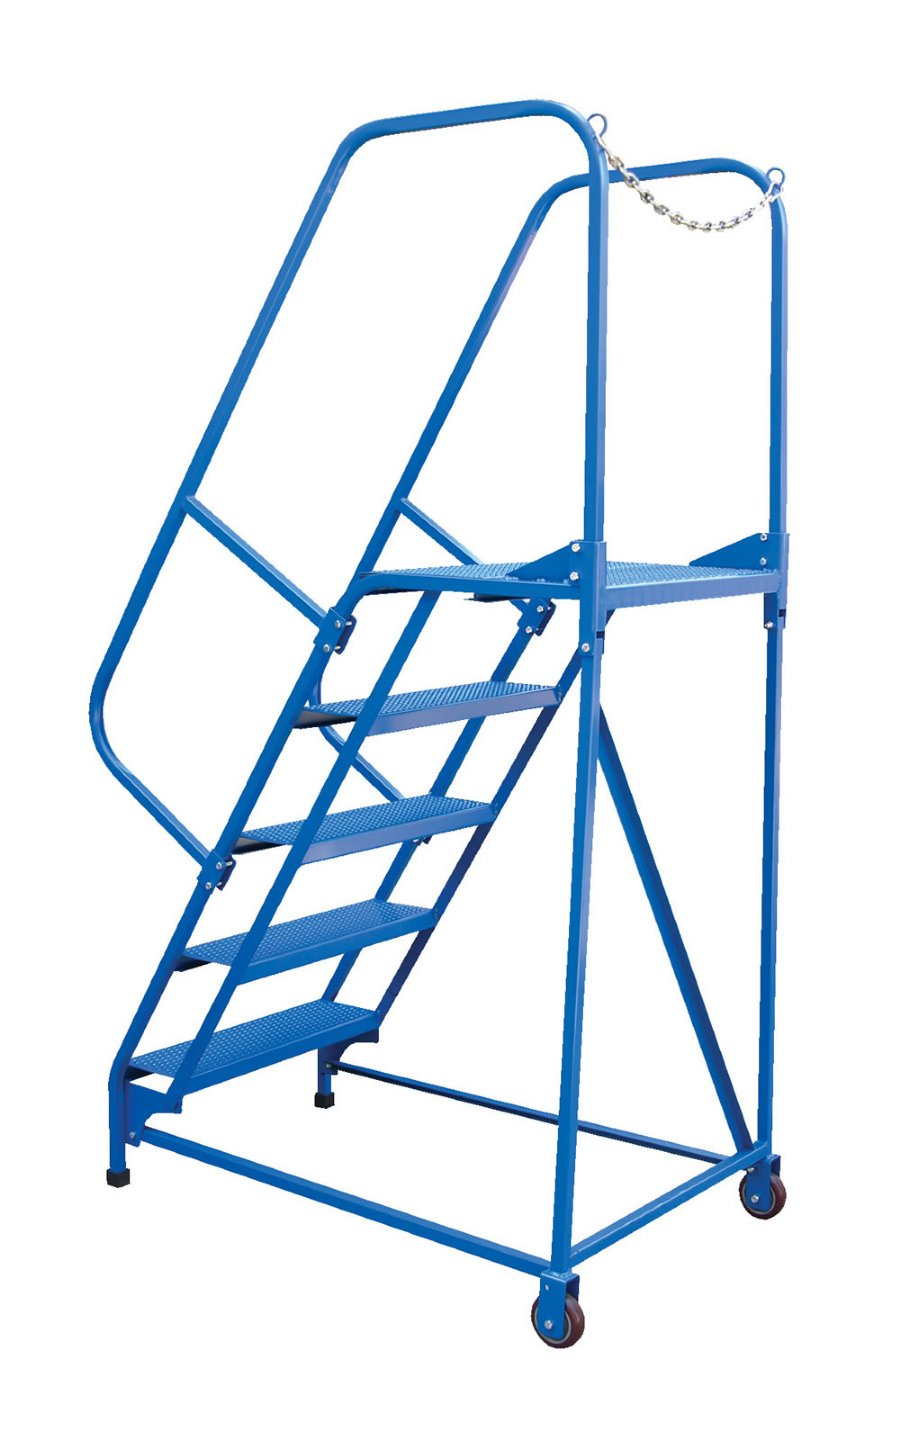 5 Step Portable Maintenance Ladder With Grip Strut Steps